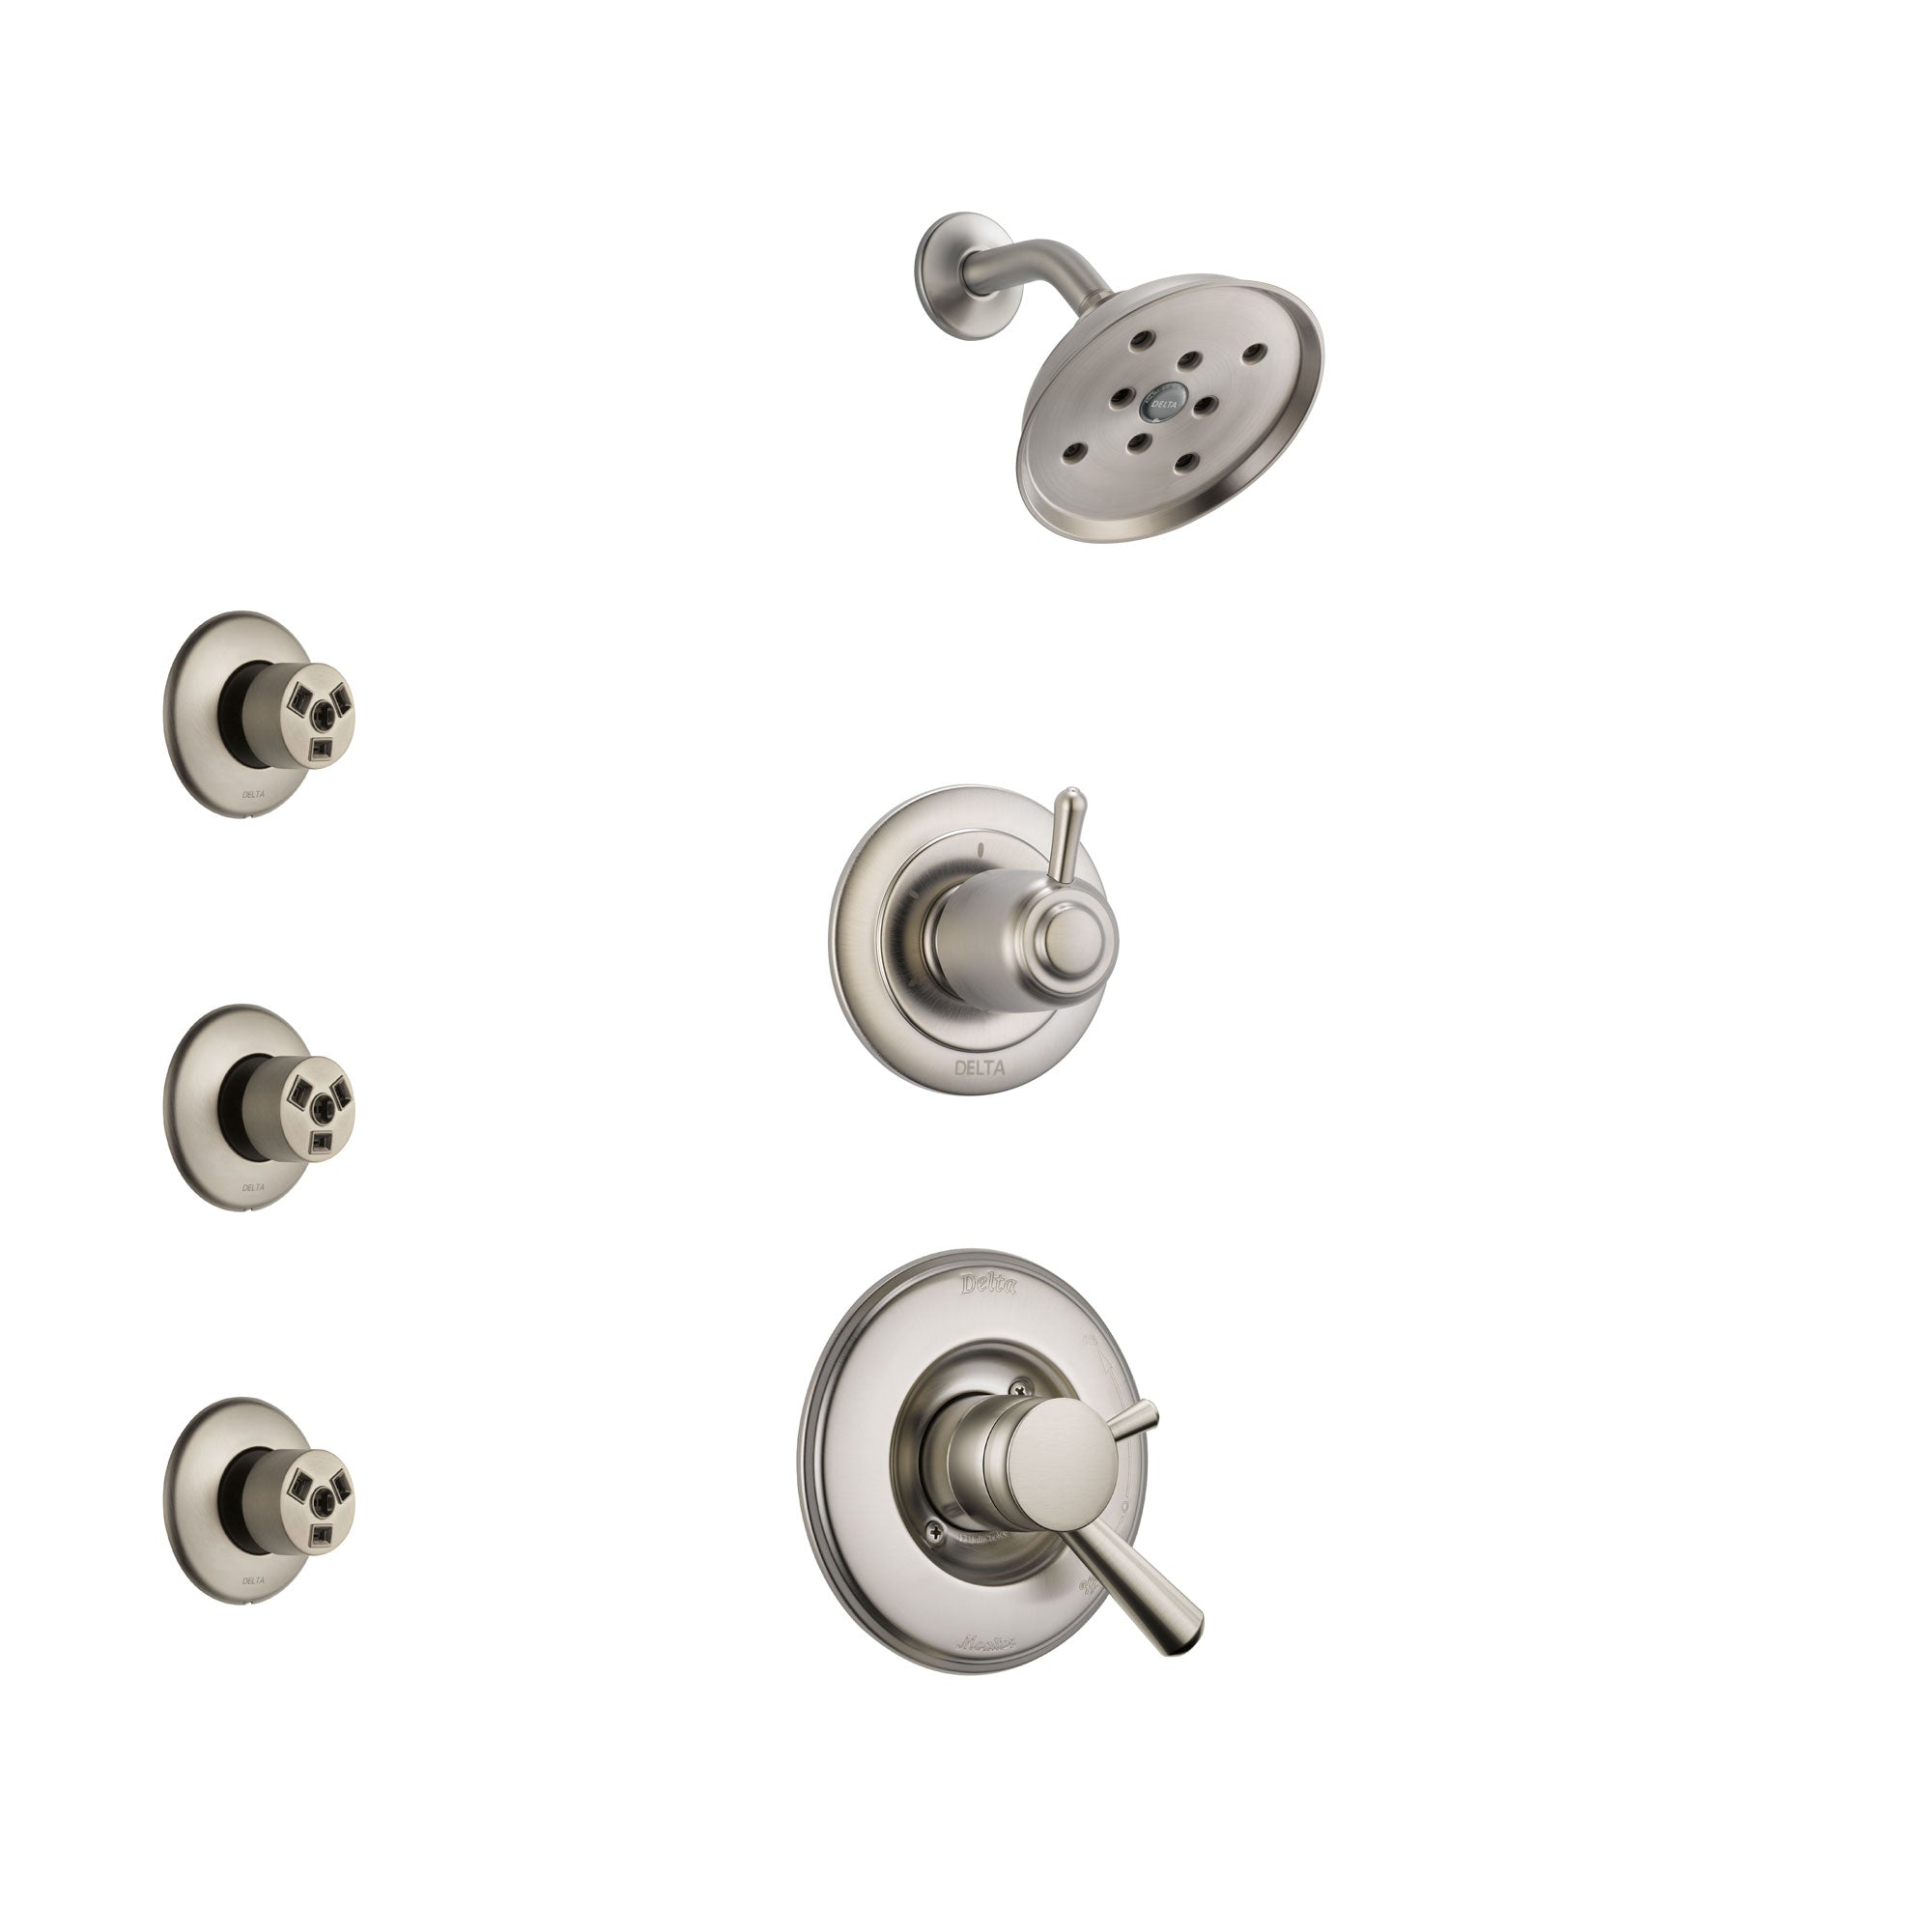 Delta Linden Stainless Steel Finish Shower System with Dual Control Handle, 3-Setting Diverter, Showerhead, and 3 Body Sprays SS17293SS1